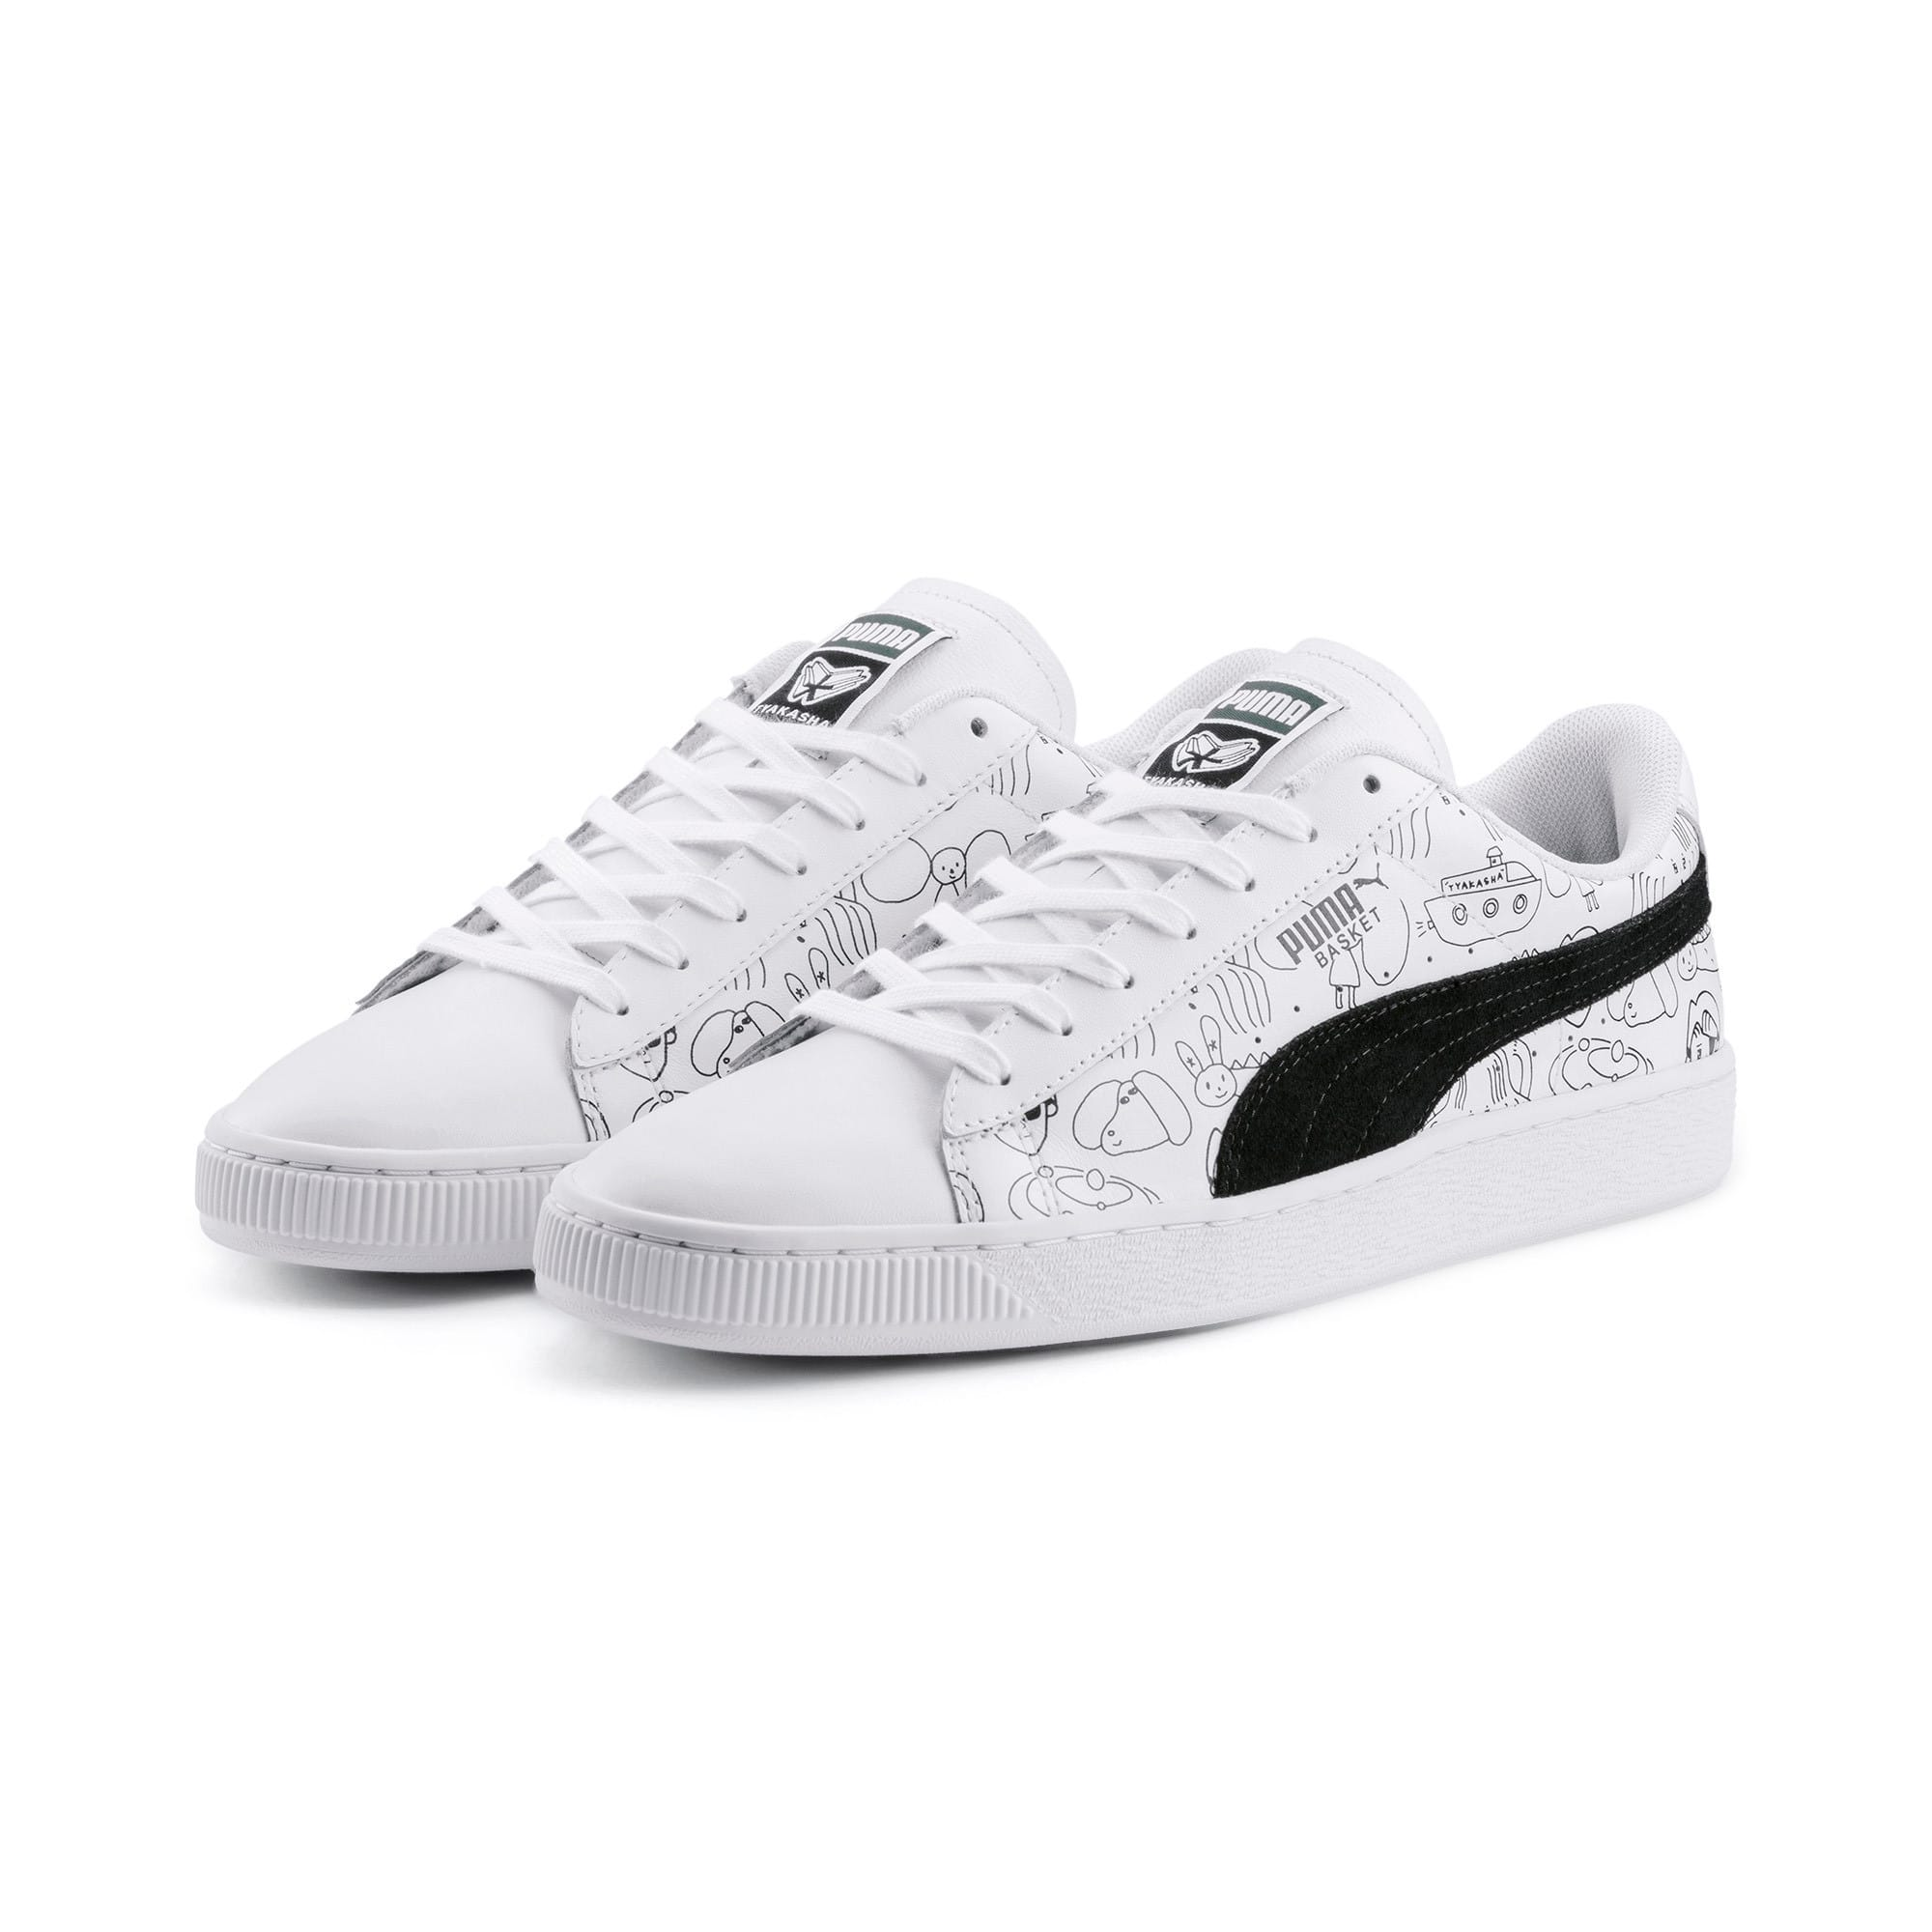 Thumbnail 4 of PUMA x TYAKASHA Basket Trainers, Puma White-Puma Black, medium